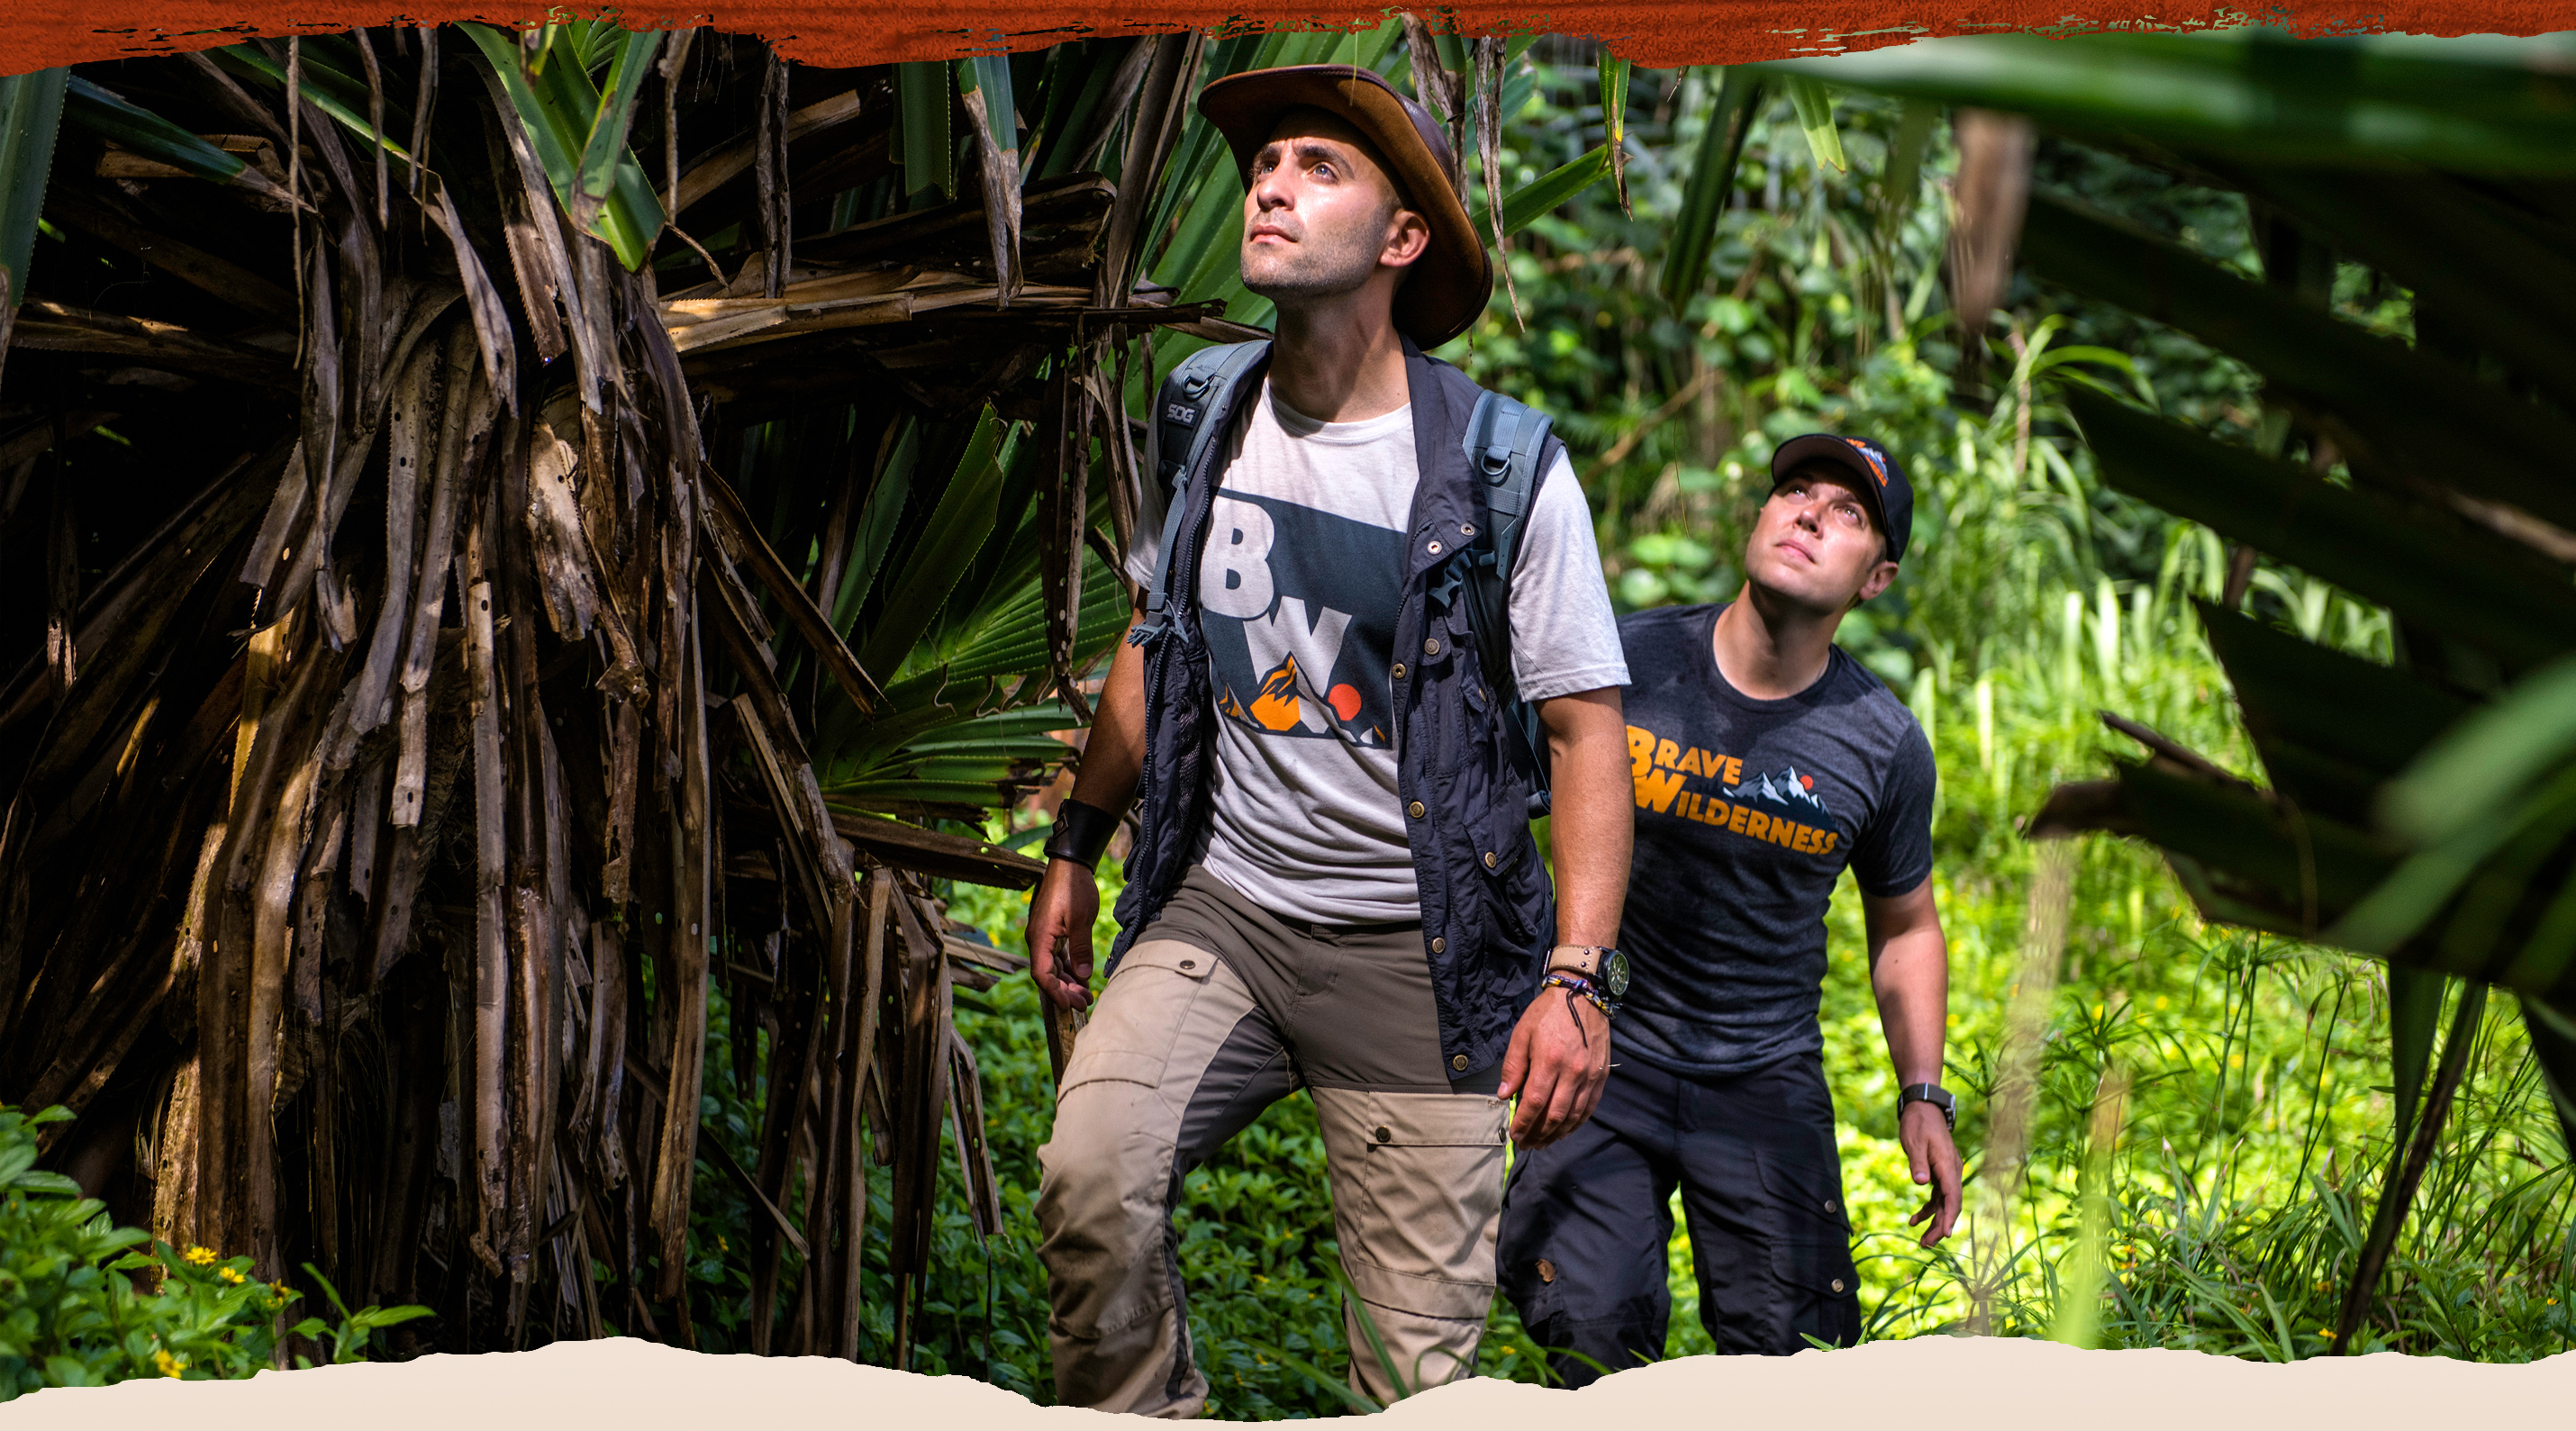 Coyote Peterson's Brave Wilderness Tours